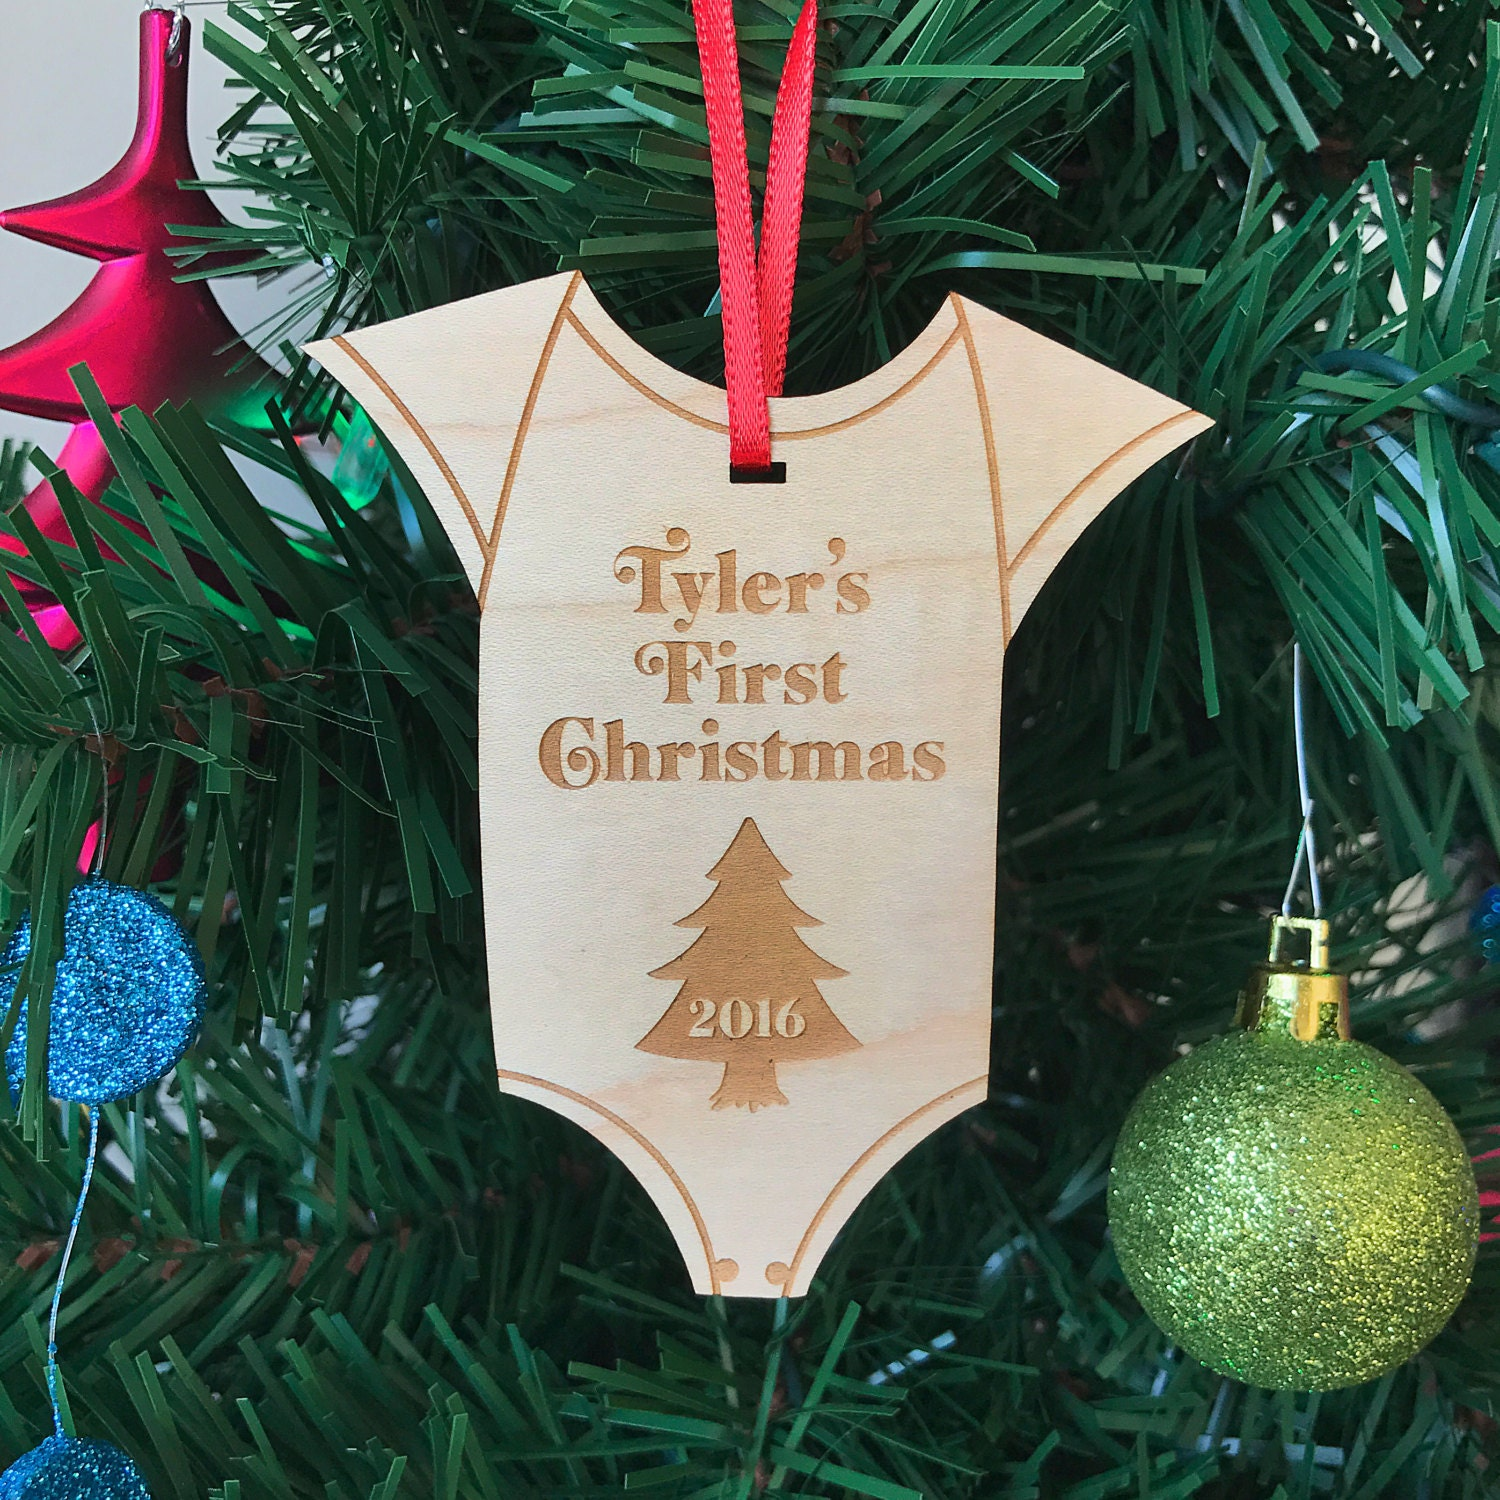 newest 70890 b20c8 Baby's First Christmas Ornament Wooden Ornament Handmade Baby Christening  Christmas Gift Family Name Christmas Tree Decoration Wood Decor